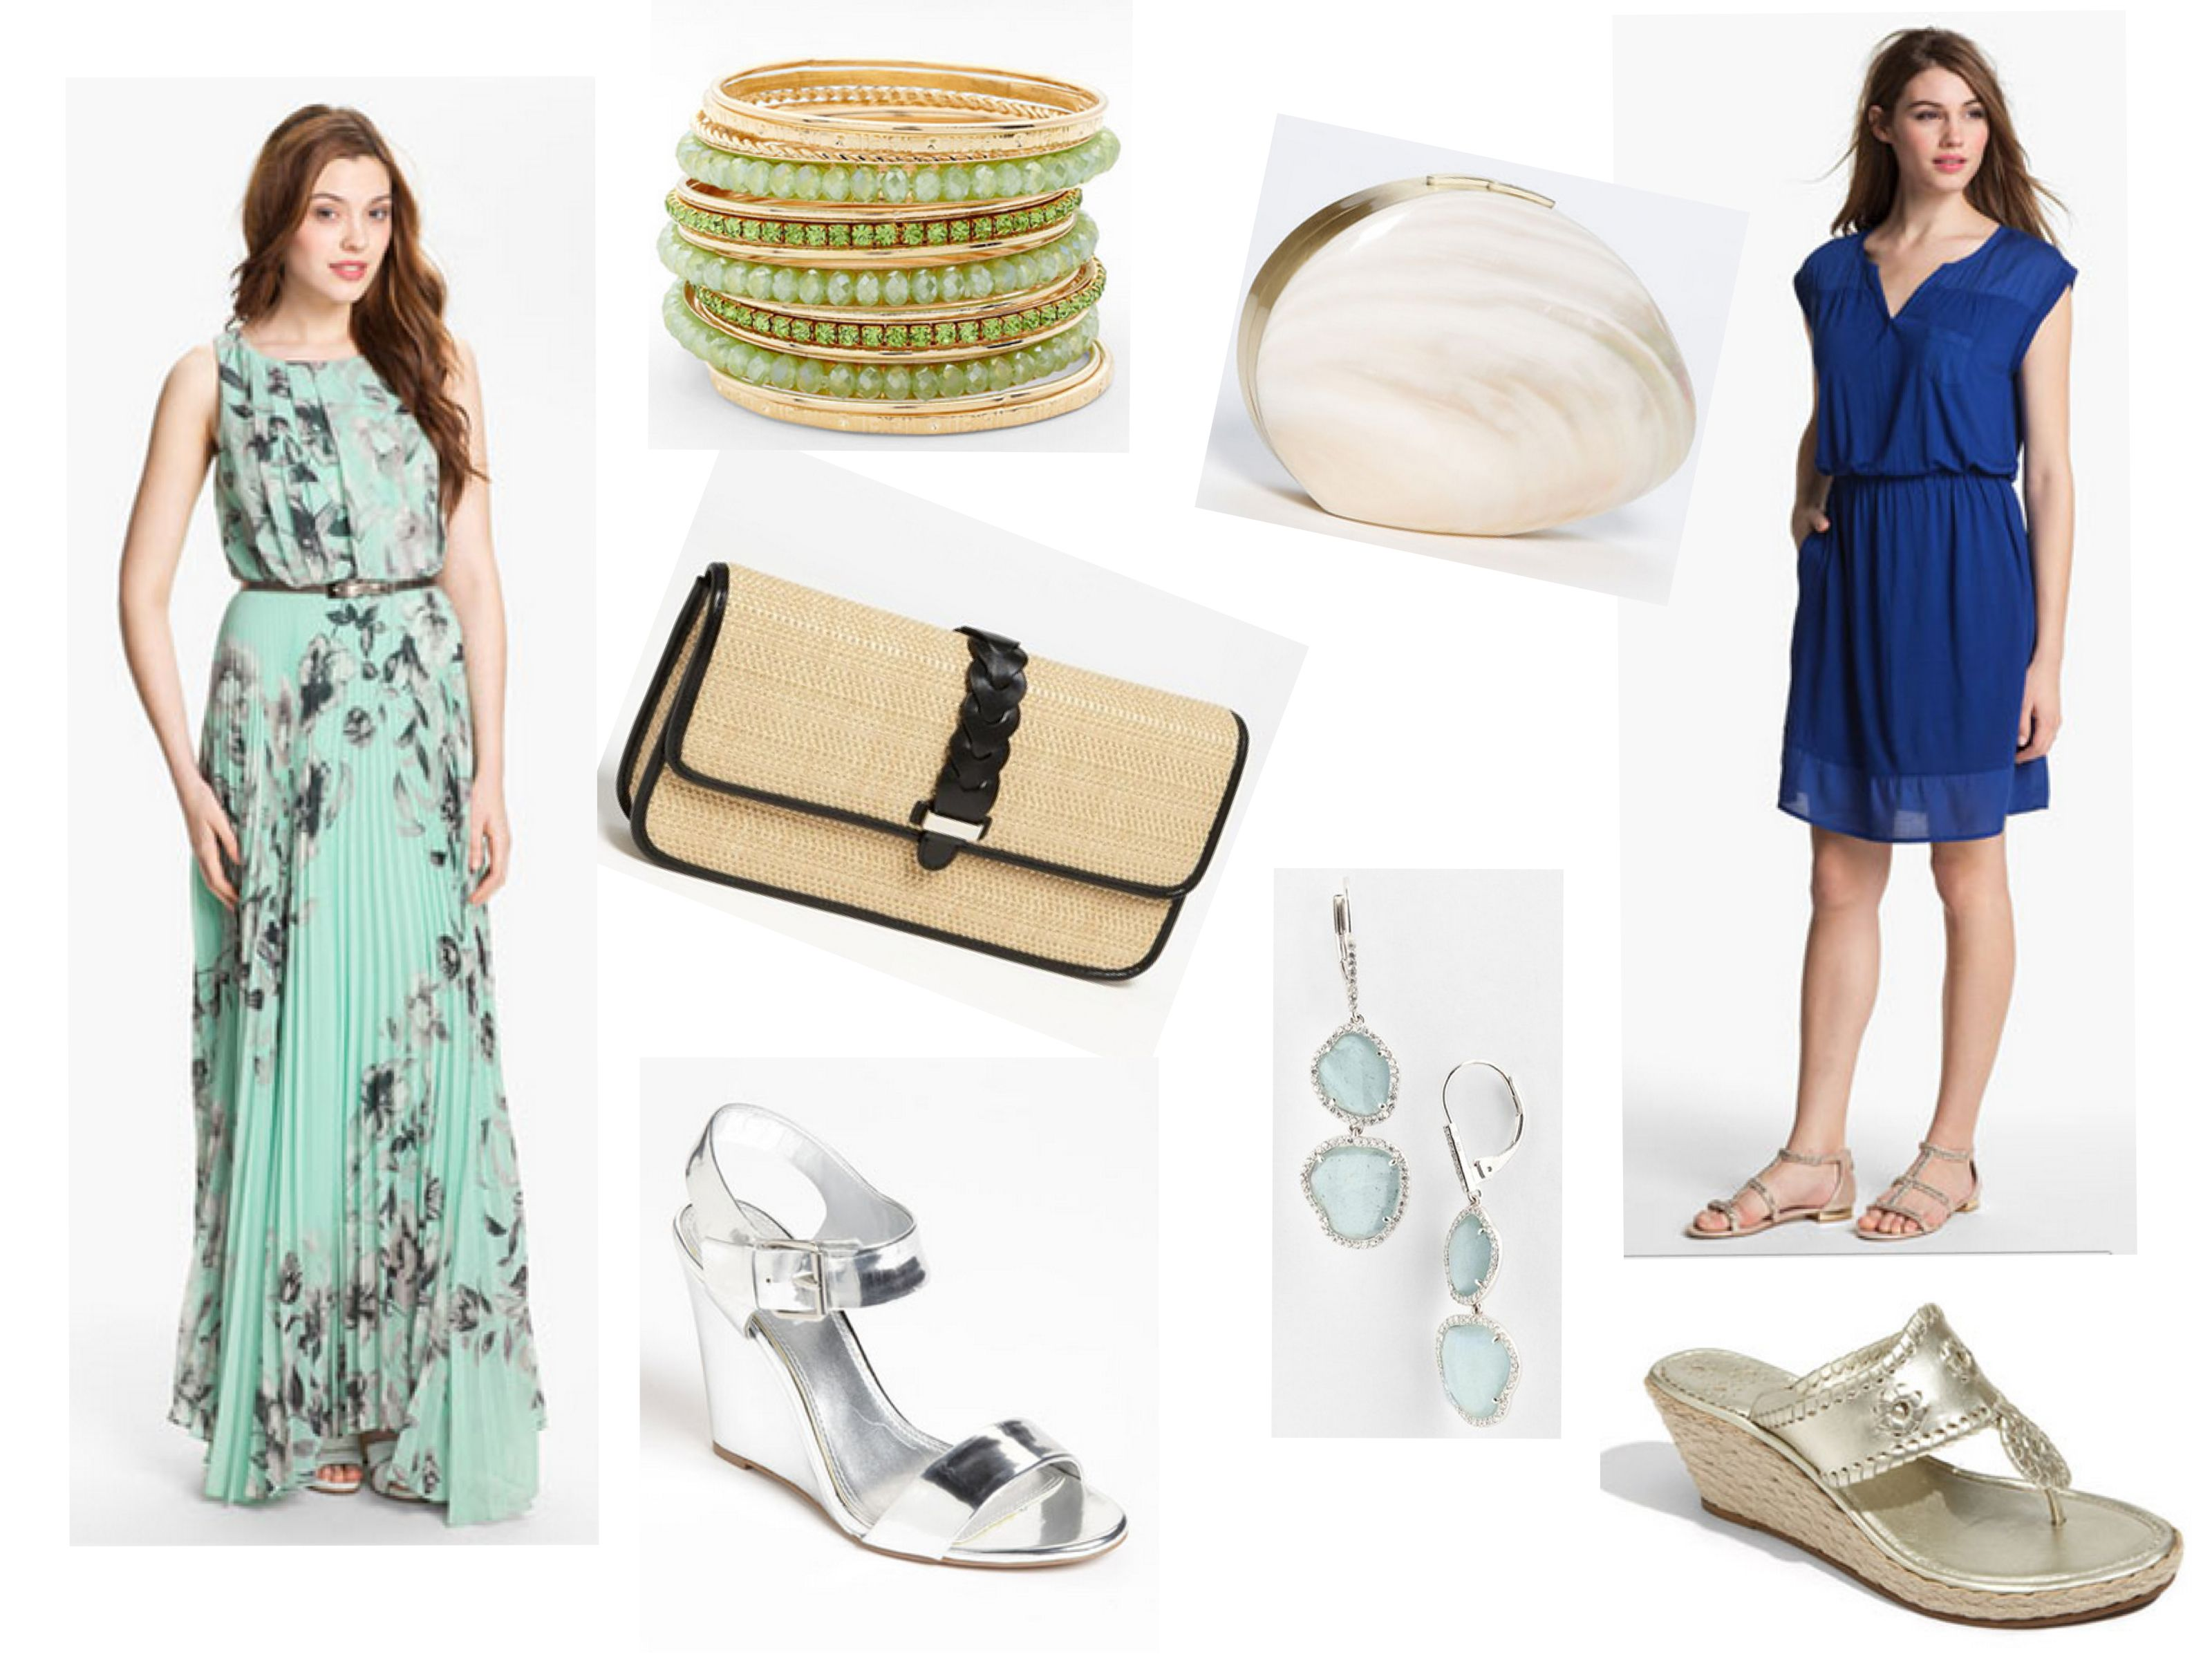 6 Outfits To Wear To A Backyard Style Wedding Wedding Reception